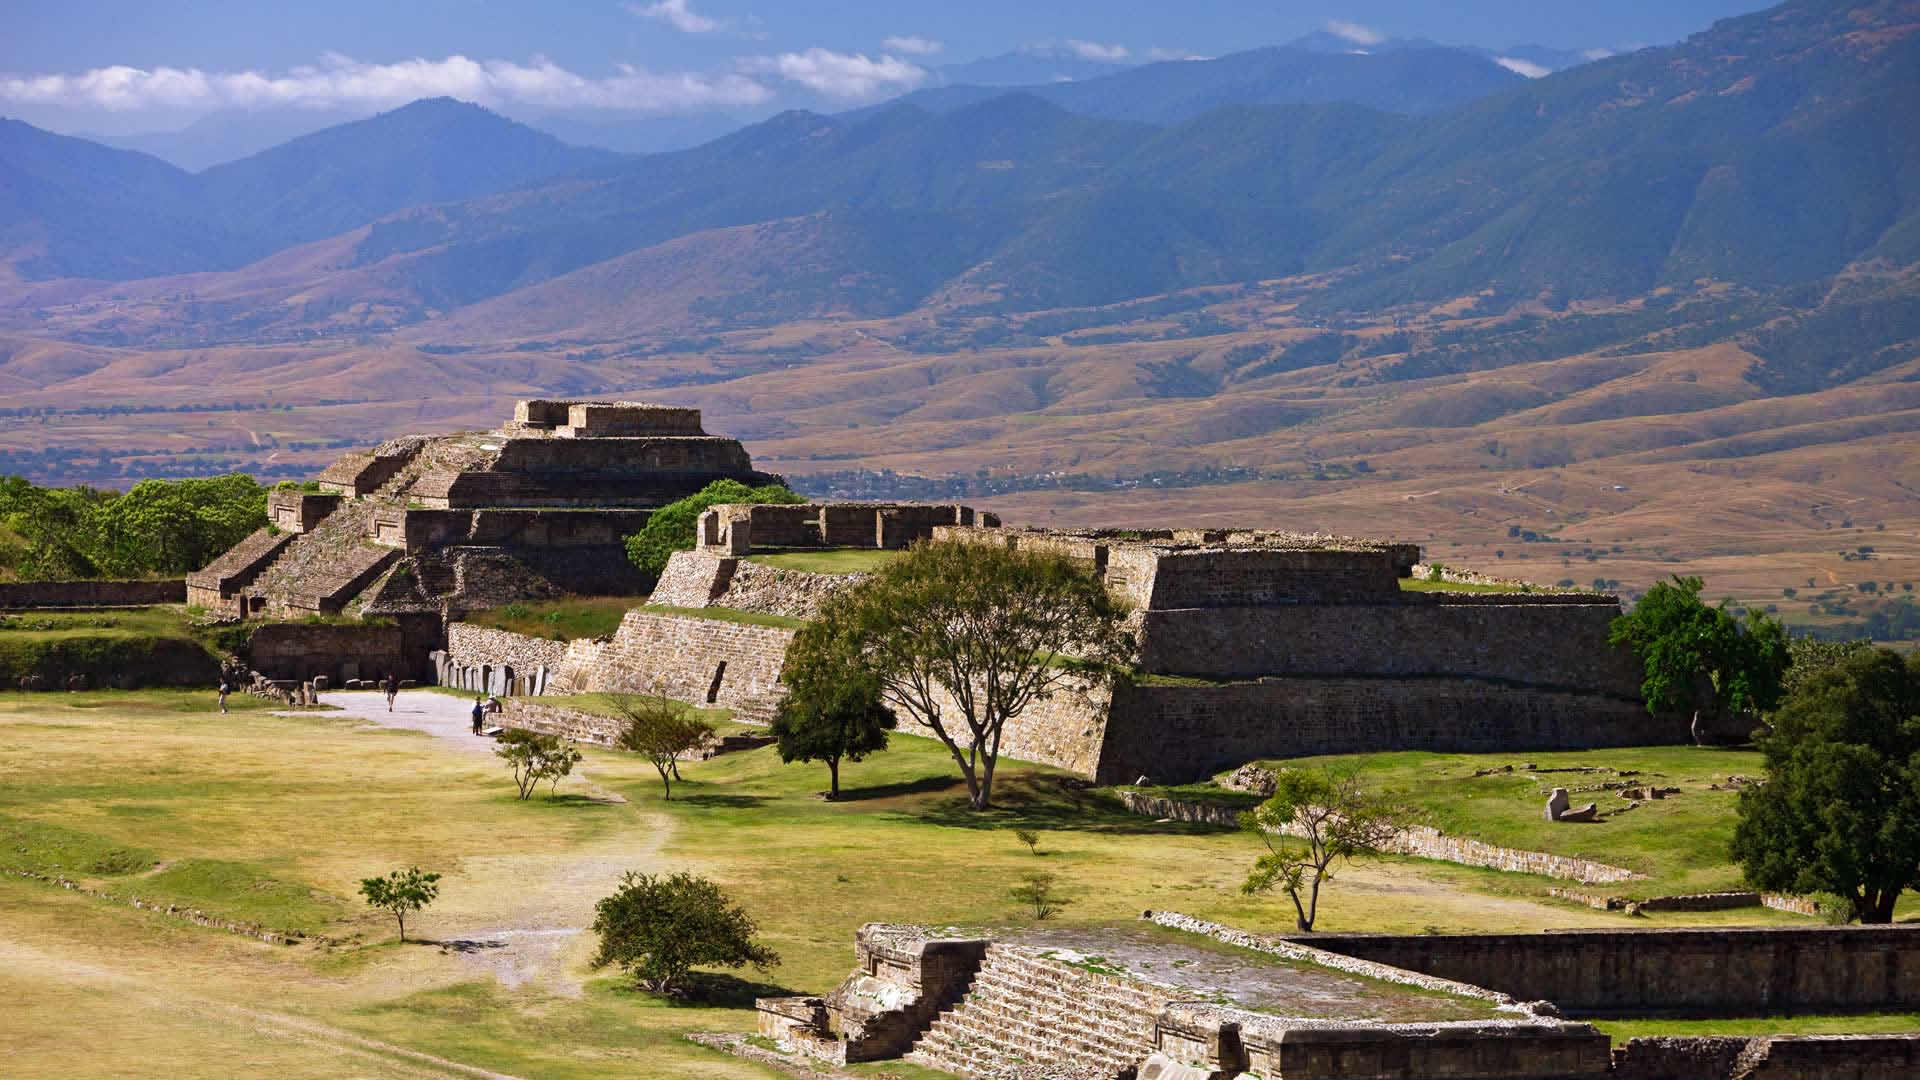 Monte alban in oaxaca historical facts and pictures the for Oaxaca to mexico city